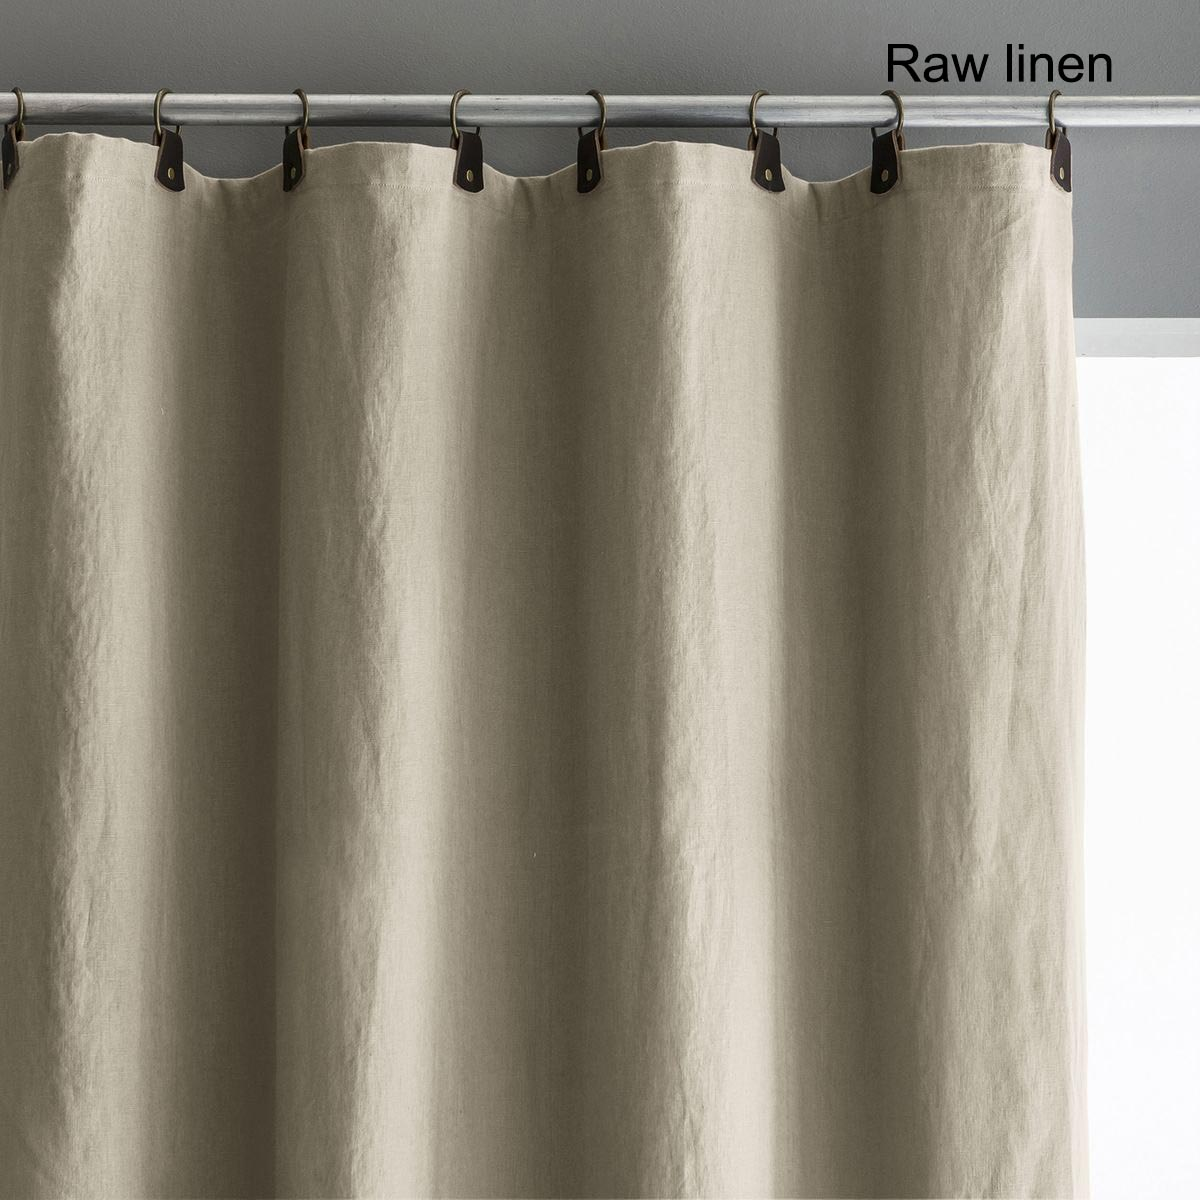 Private Single Pre-Washed Linen Curtain with Leather Tabs(裏地なし)